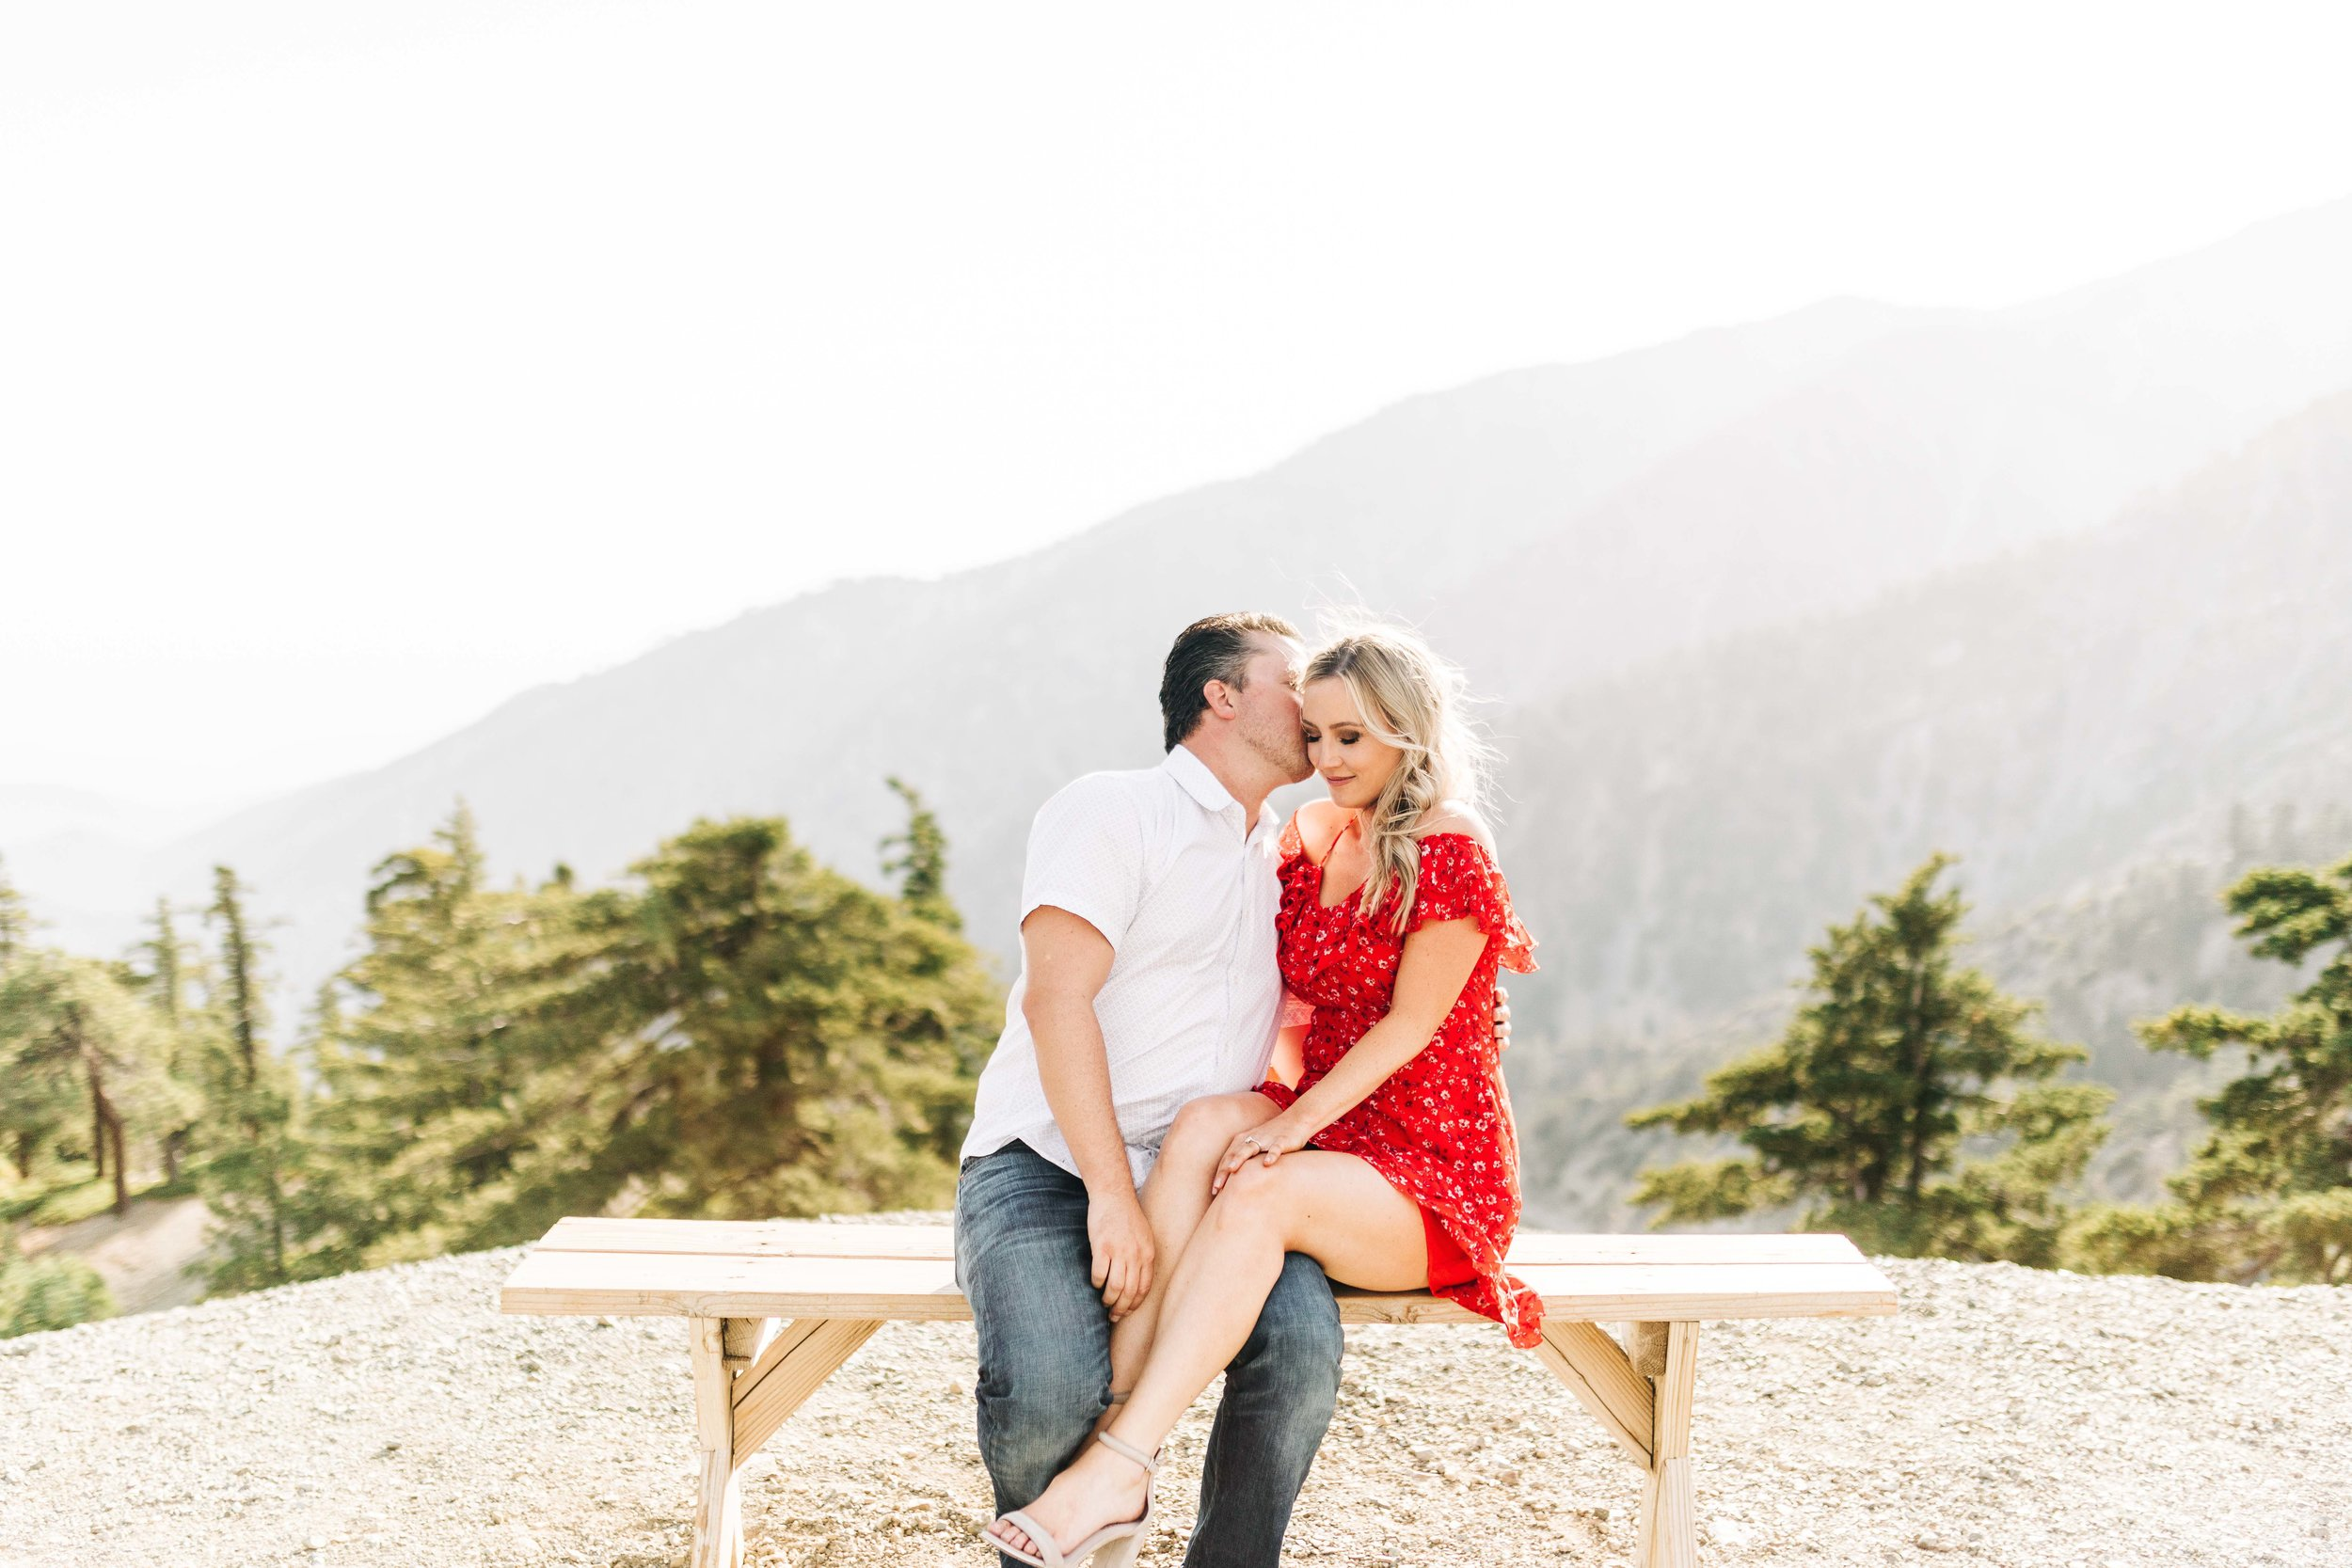 Rachael&Keith-Mt-Mount-Baldy-Engagement-Photos-Clarisse-Rae-Southern-California-Wedding-Photographer_3